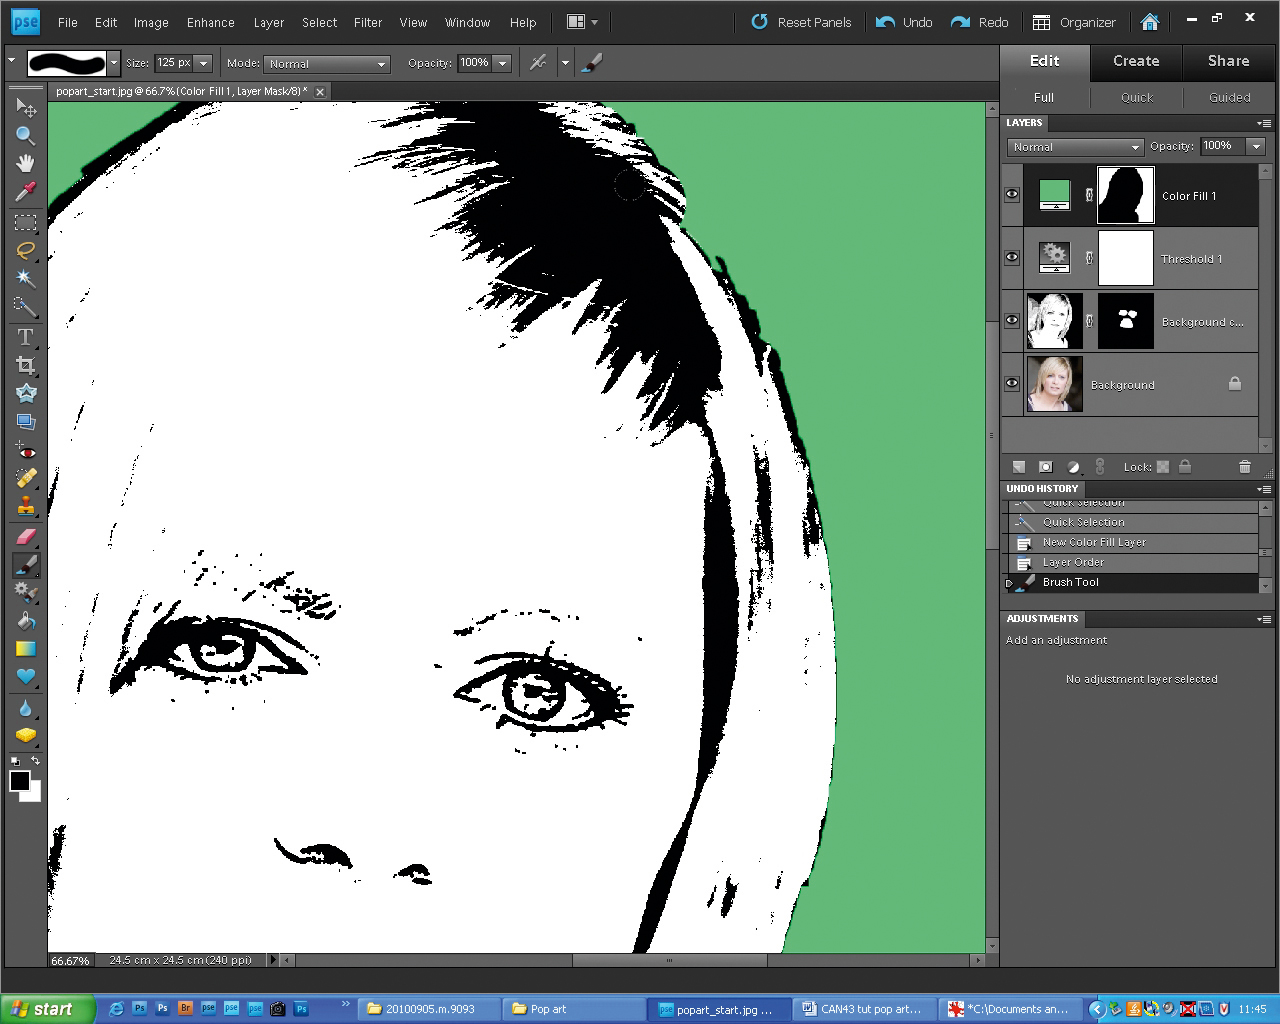 How to color your art in photoshop - Choose A Green From The Colour Palette To Tidy The Edges Use The Brush Tool Press B To Paint Over Your Layer Mask To Reveal Detail Beneath